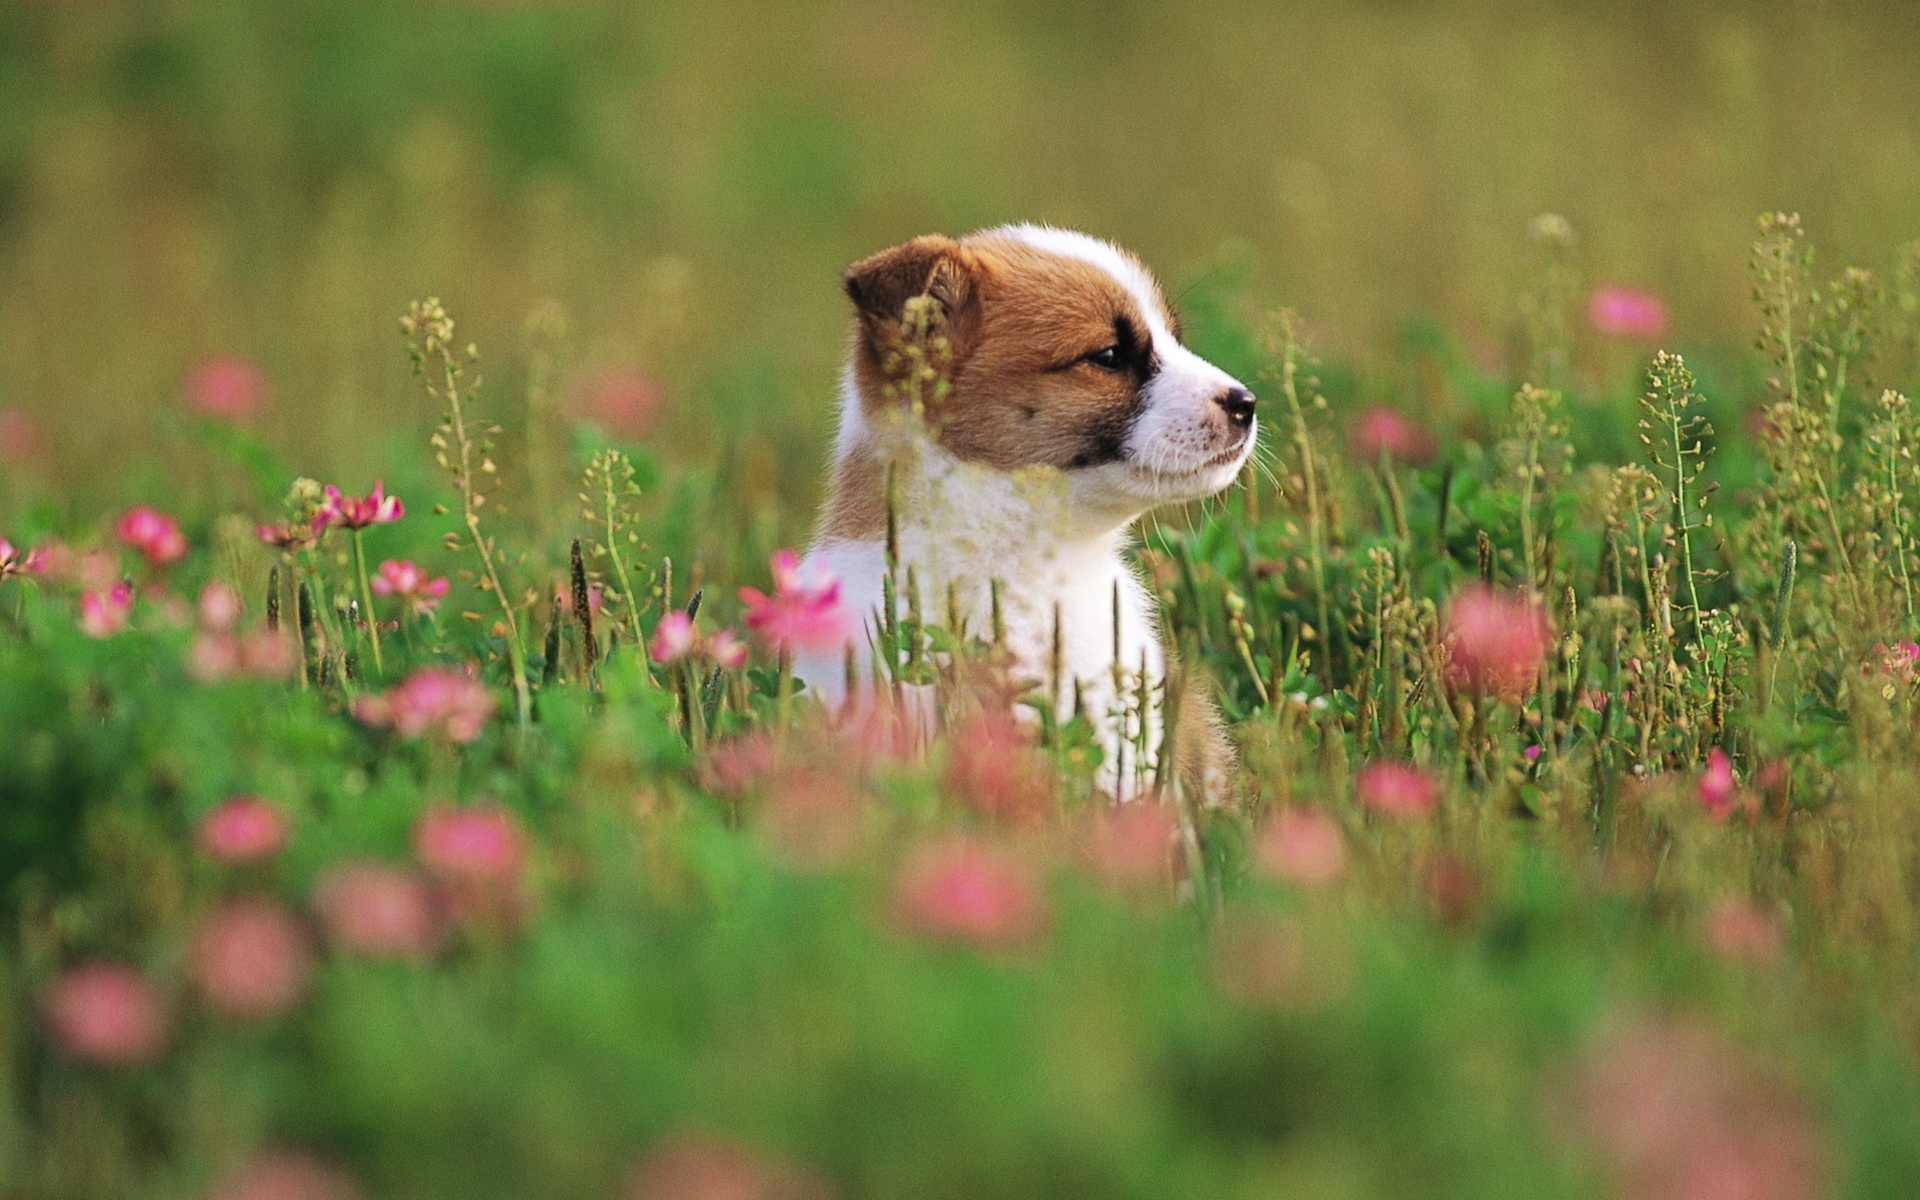 grass field background with flowers. Puppy Dog On Flower Grass Field Background With Flowers H